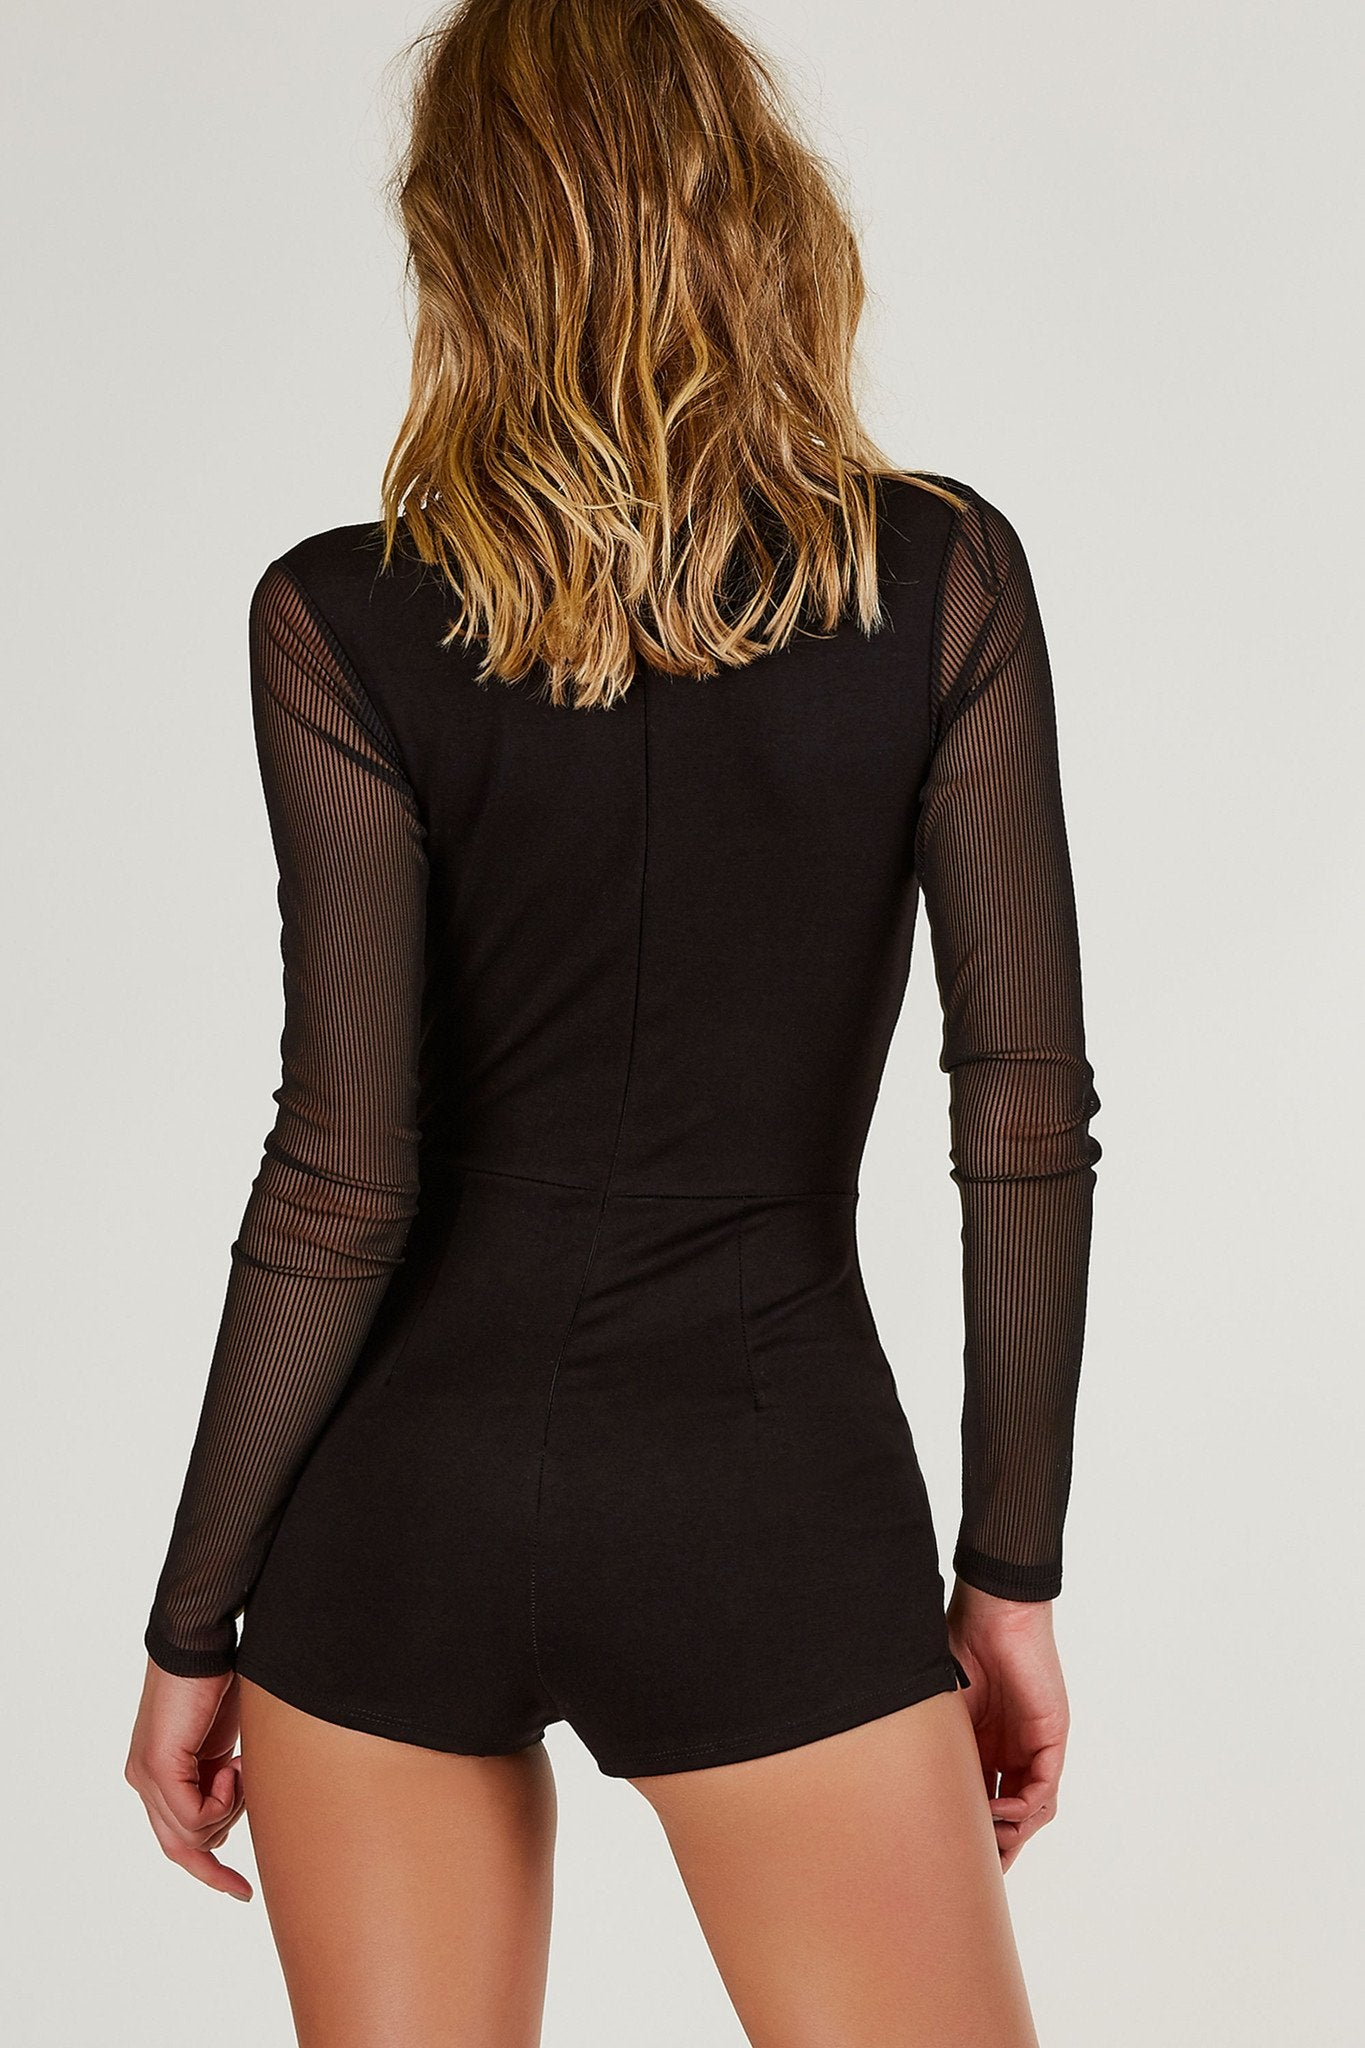 Deep V-neck romper with contrast mesh sleeves. Stretchy material with overall slim fit and hidden zip closure in back.